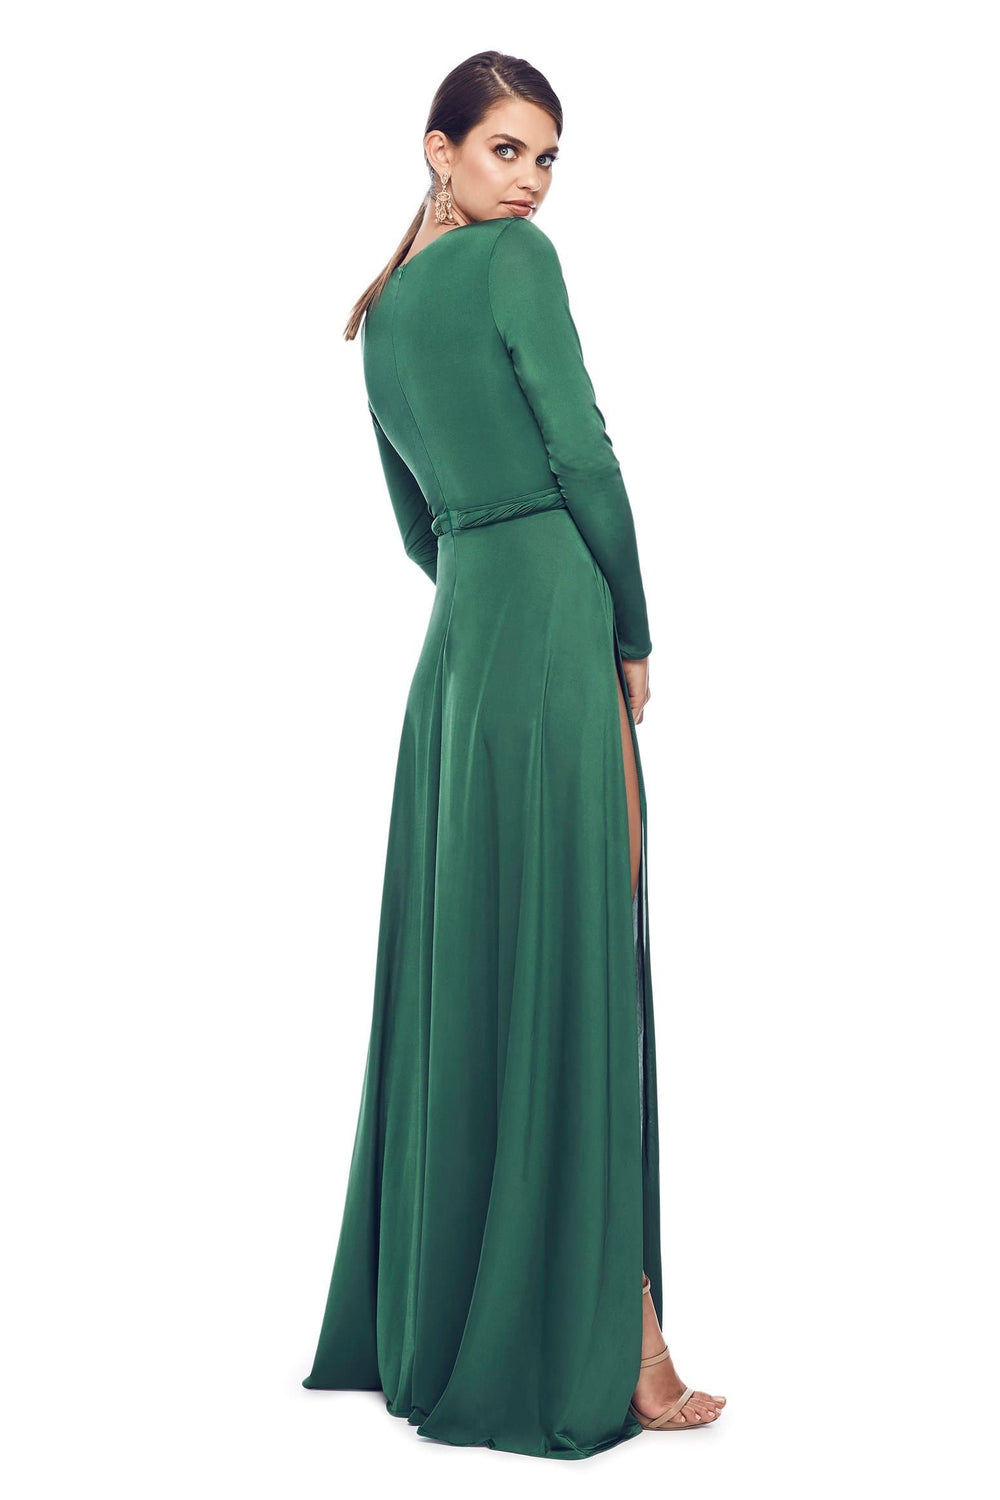 ca5b566a01dd0 Sahara - Emerald Jersey Long Sleeve Gown with Deep Plunge Neckline